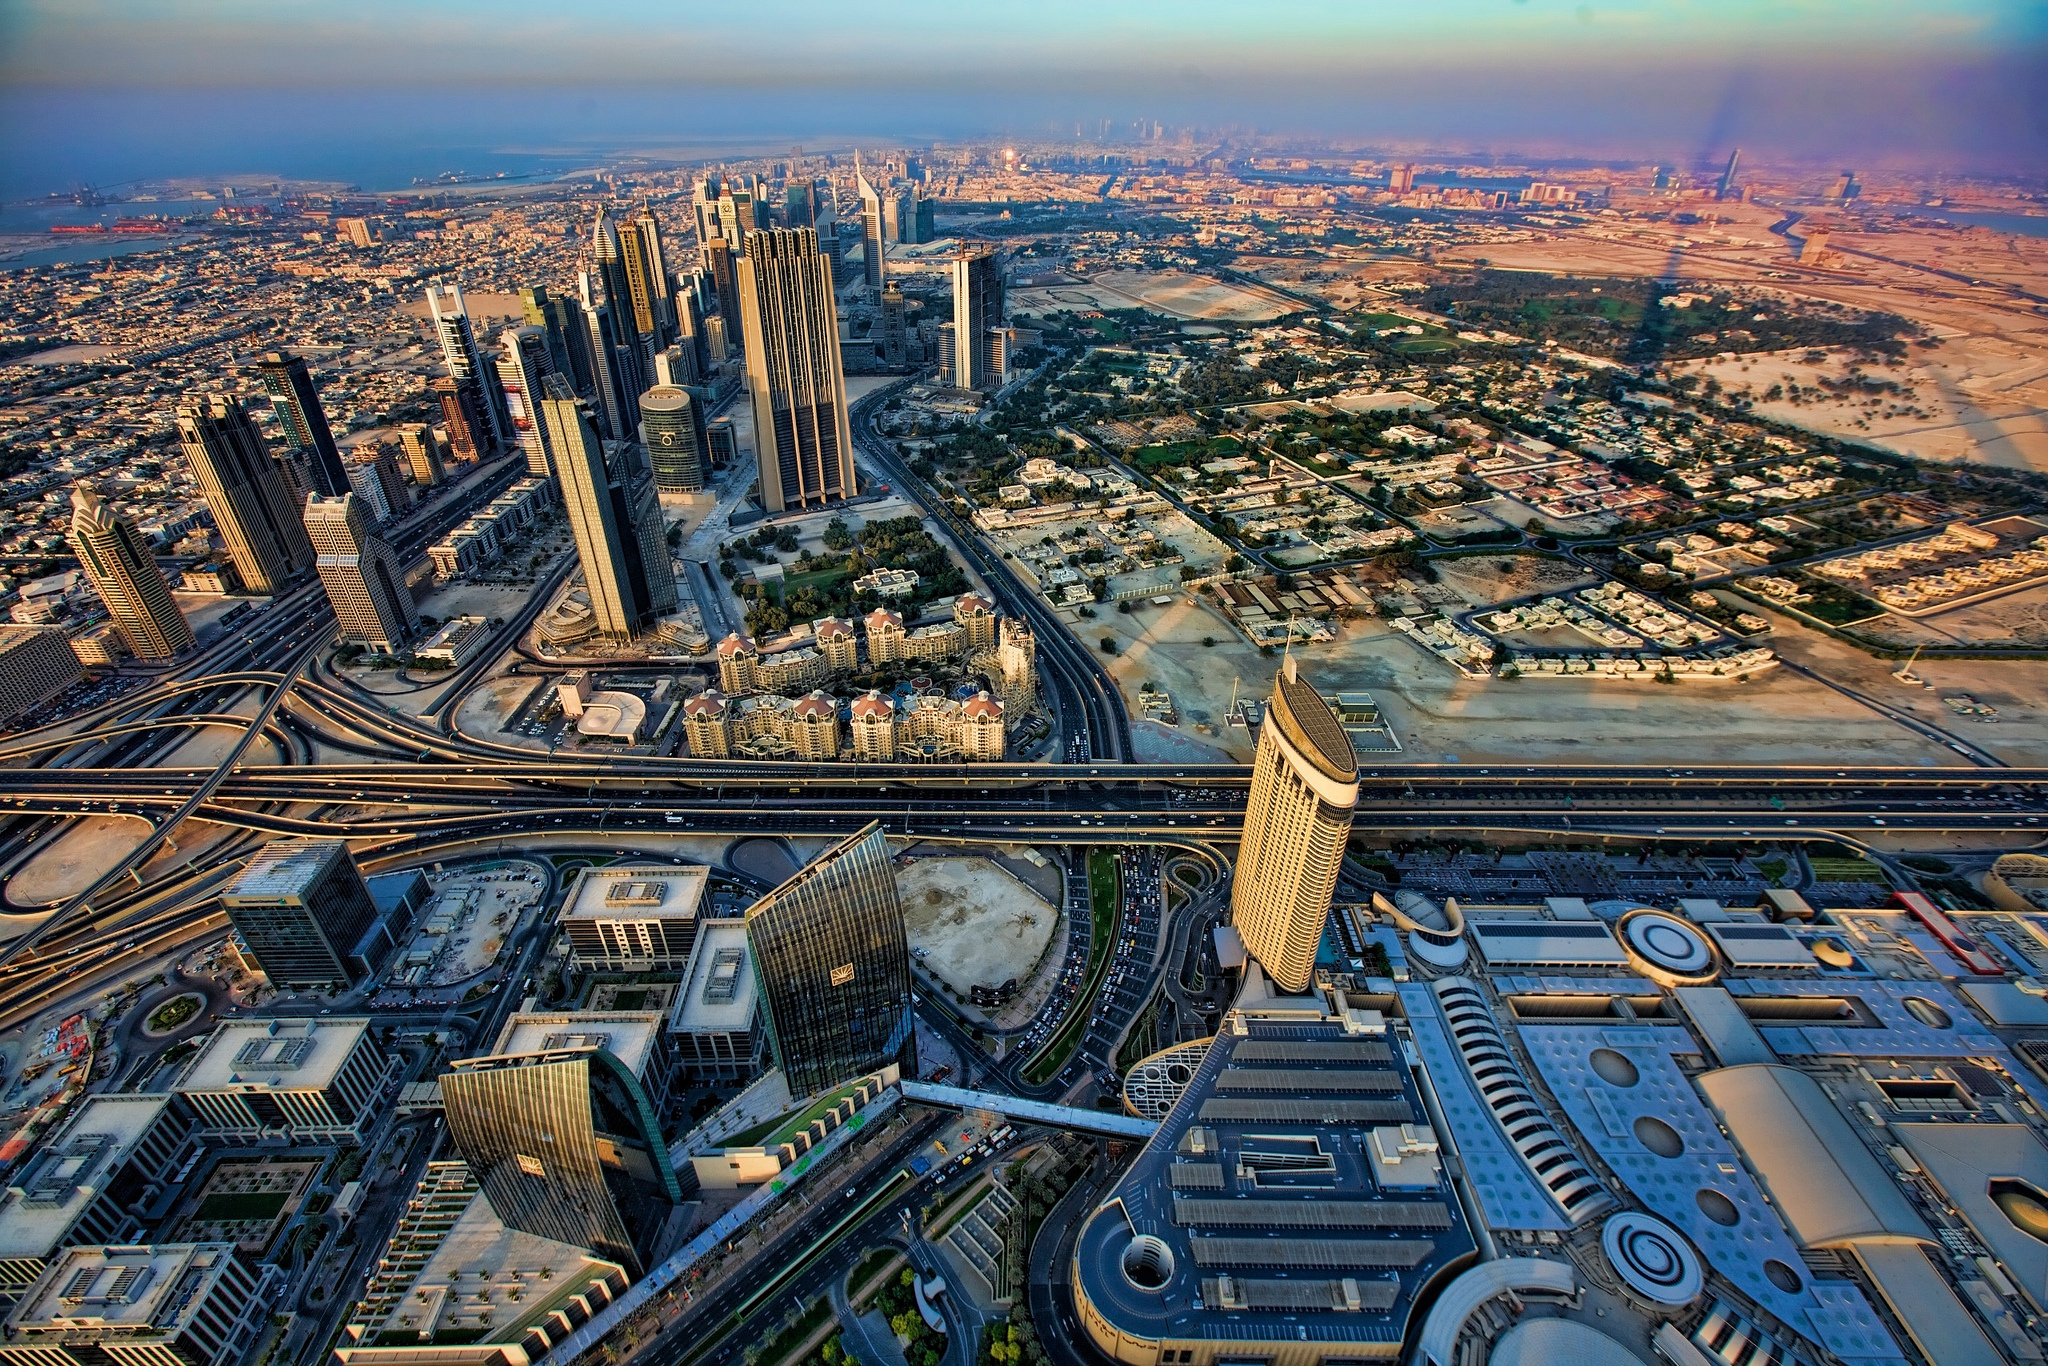 """Sky Over Dubain"" by Michael Theis via Flickr Creative Commons"